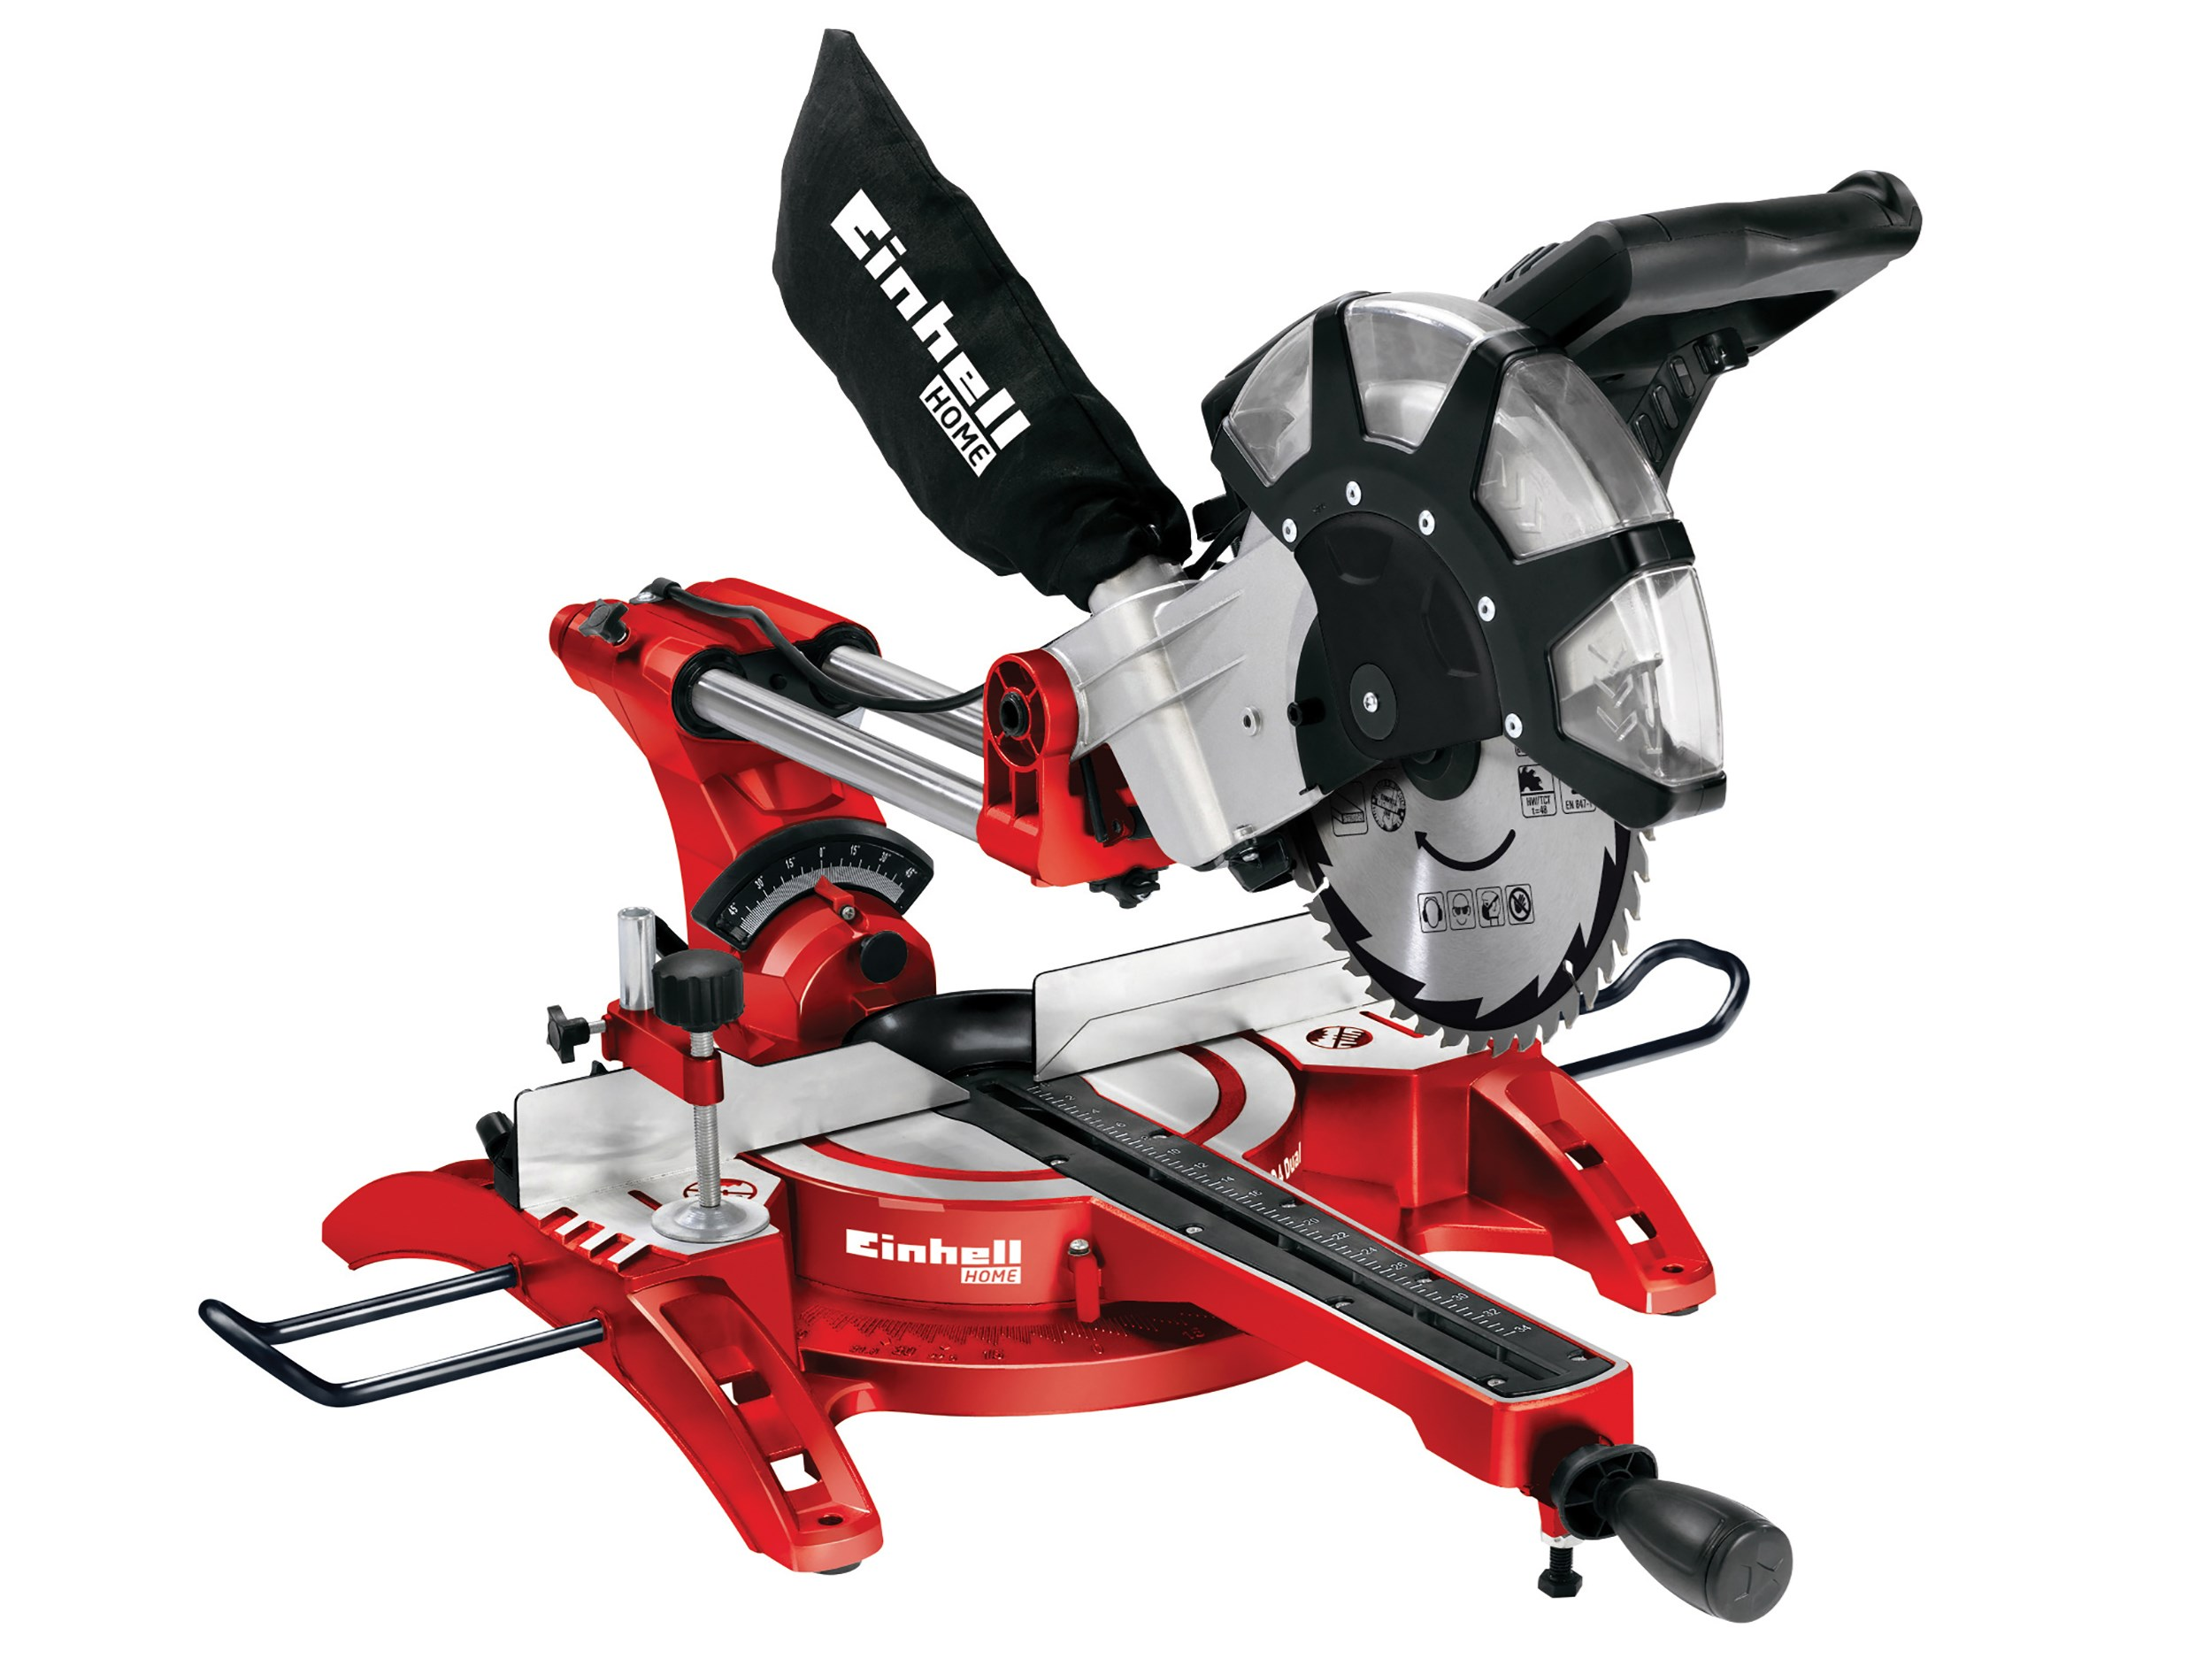 Einhell Th Sm2534 Sliding Cross Cut Mitre Saw 250mm